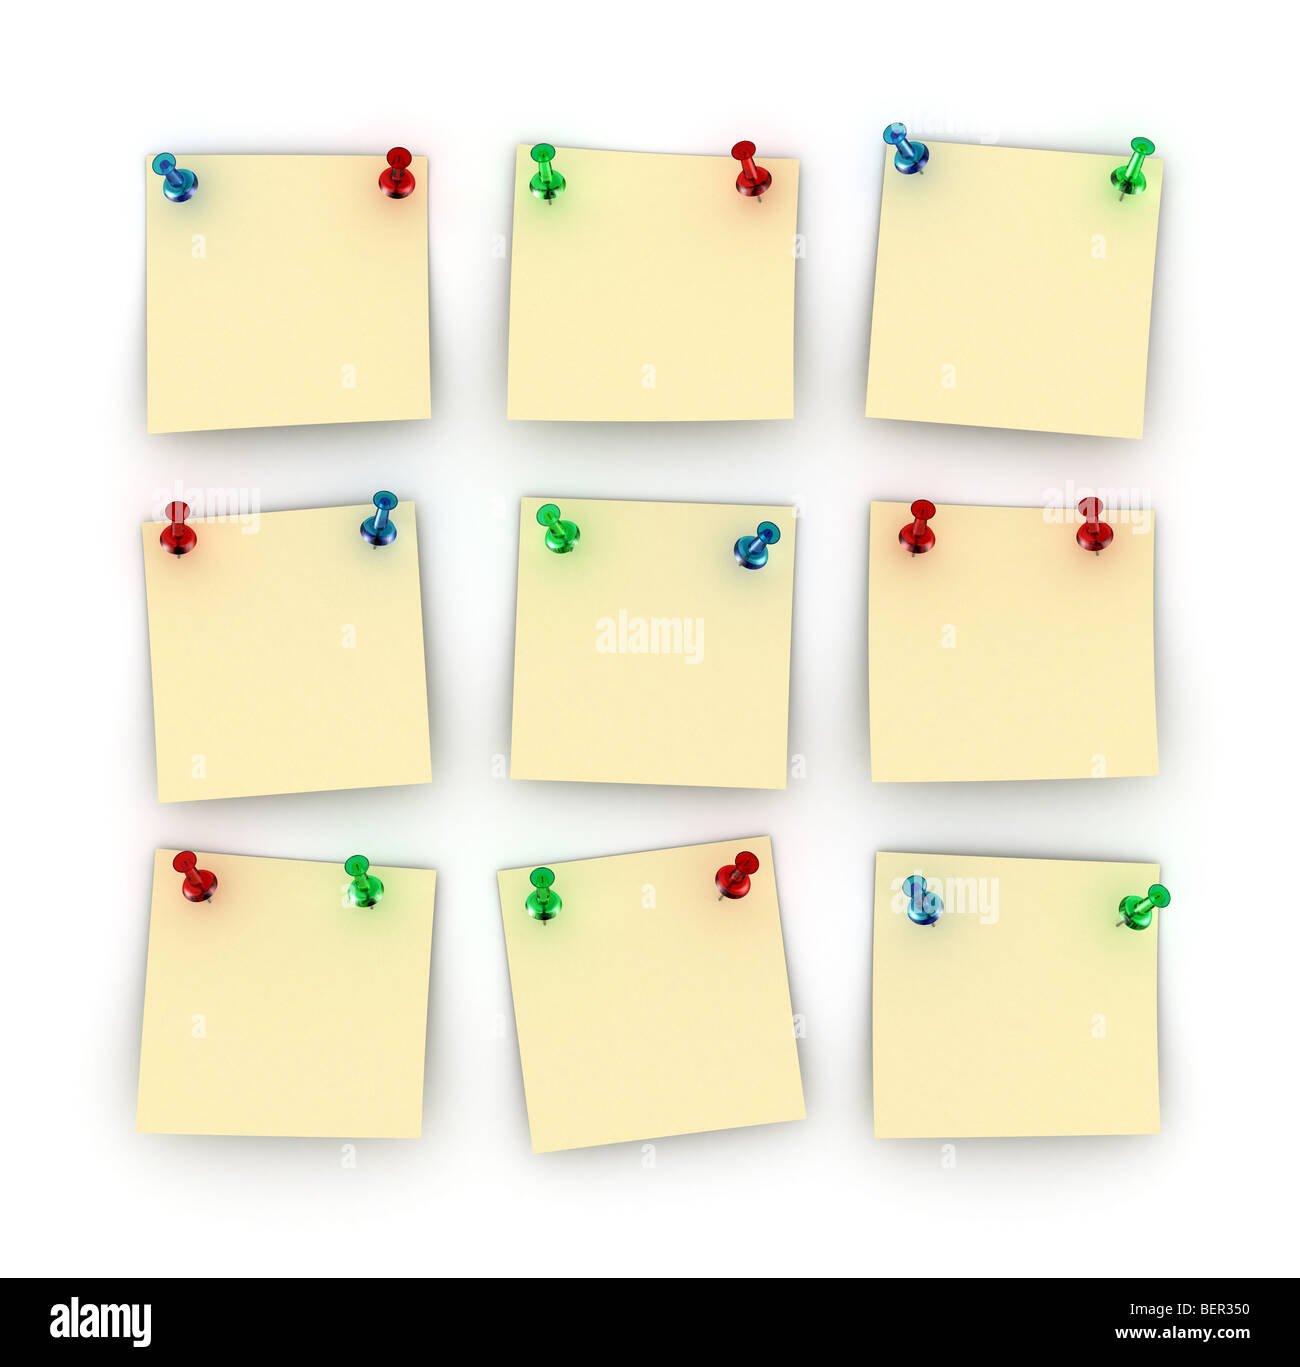 Nine Postit notes with differently colored push pins - Stock Image